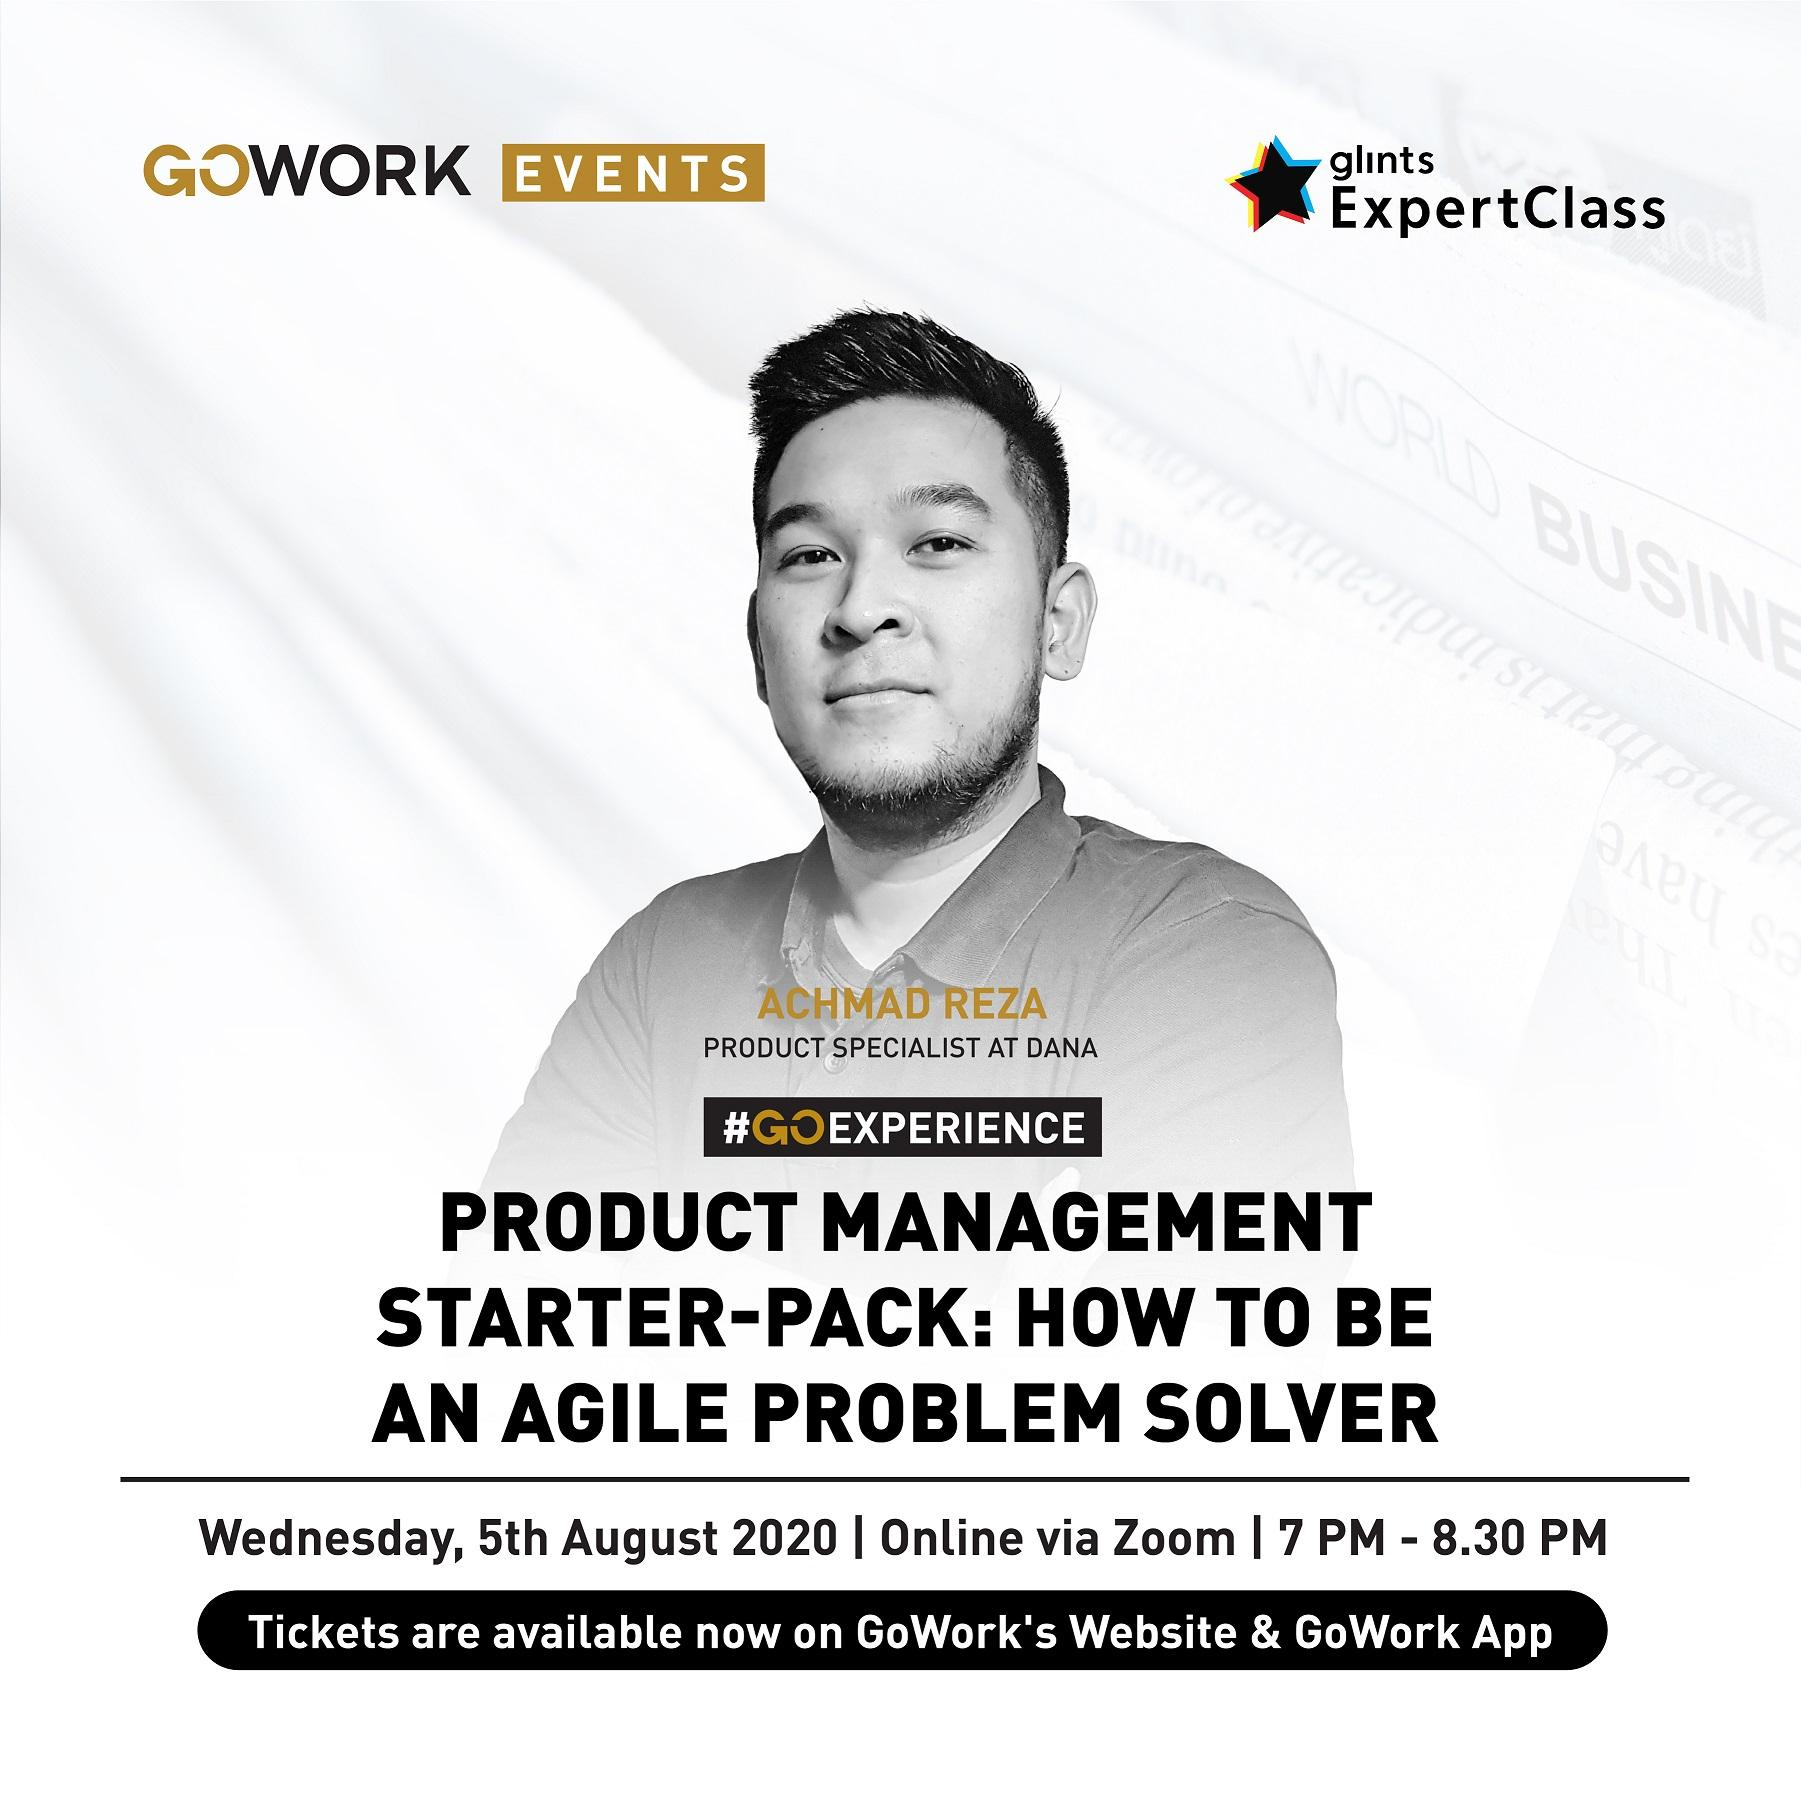 Product Management Starter-Pack: How To Be An Agile Problem Solver